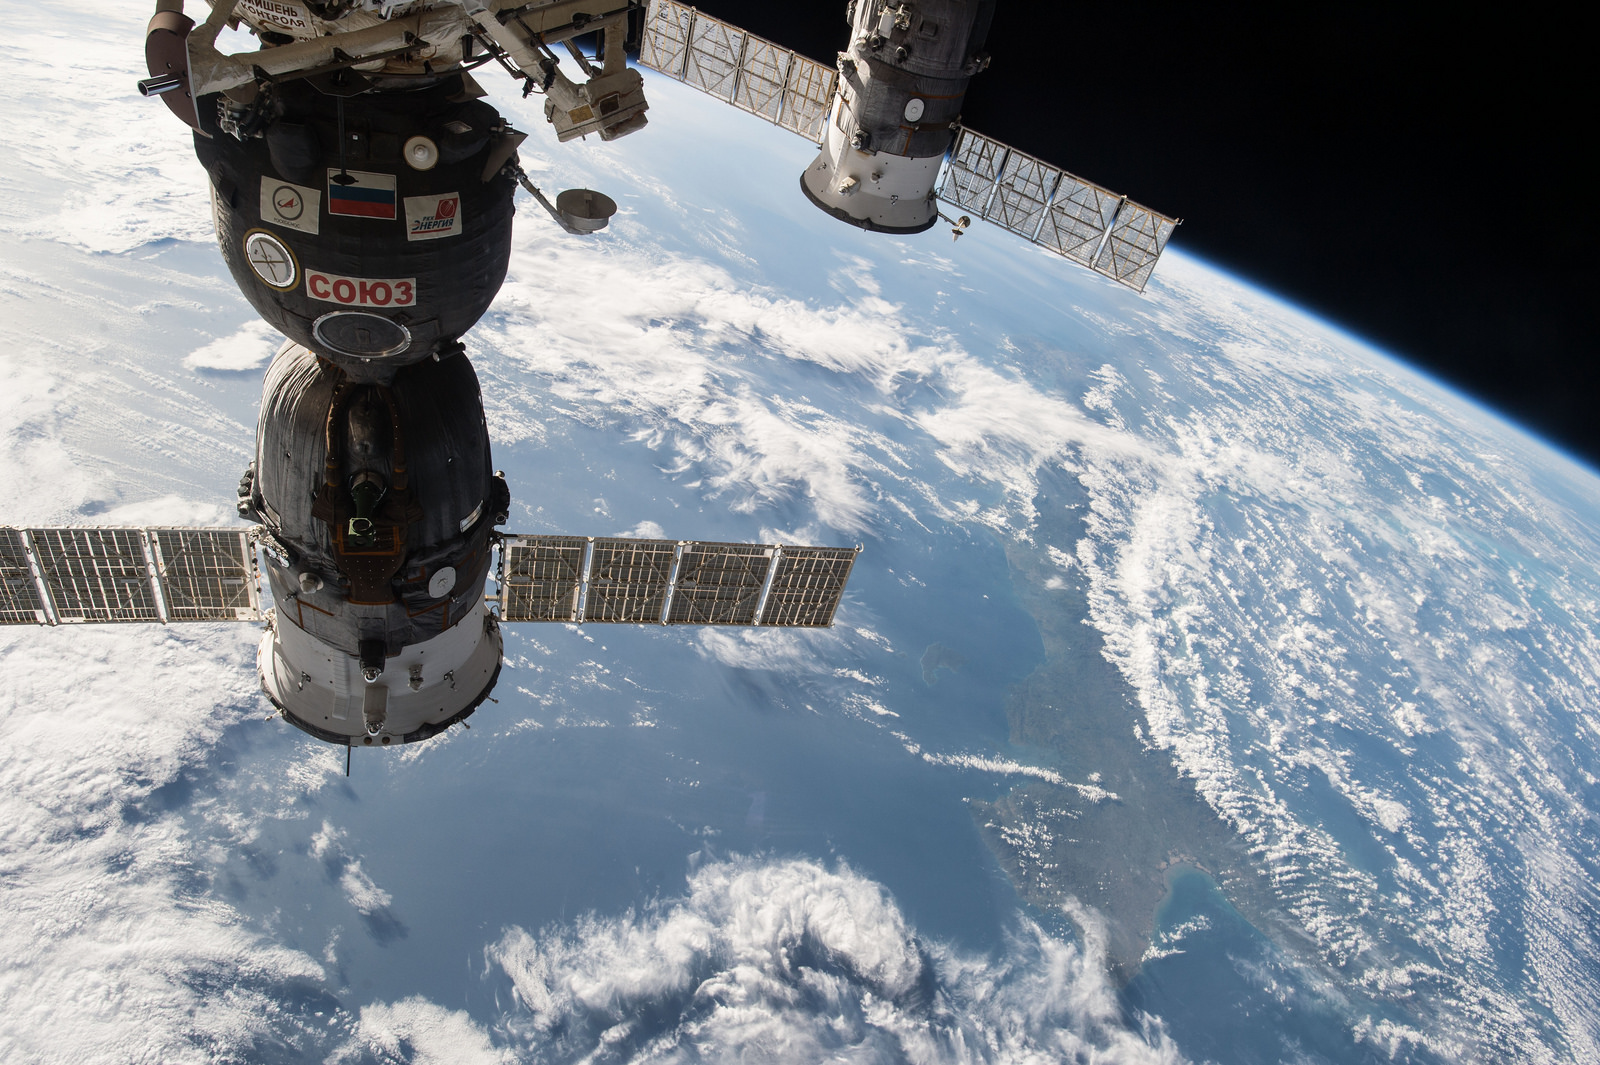 ISS042E101429 (01/05/2014) --- This image, photographed by one of the Expedition 42 crew members aboard the International Space Station, shows the the Soyuz TMA-15M spacecraft on the left attached to the Rassvet module on the Earth-facing port of the Russian segment of the station that delivered Expedition 42 crewmembers Anton Shkaplerov of the Russian Federal Space Agency (Roscosmos), Terry Virts of NASA and Samantha Cristoforetti of the European Space Agency on Nov. 24, 2014 , and to the right, the unpiloted ISS Progress 57 cargo craft that is docked to the Pirs Docking Compartment and which arrived at the station a month earlier on Oct. 29, 2014.